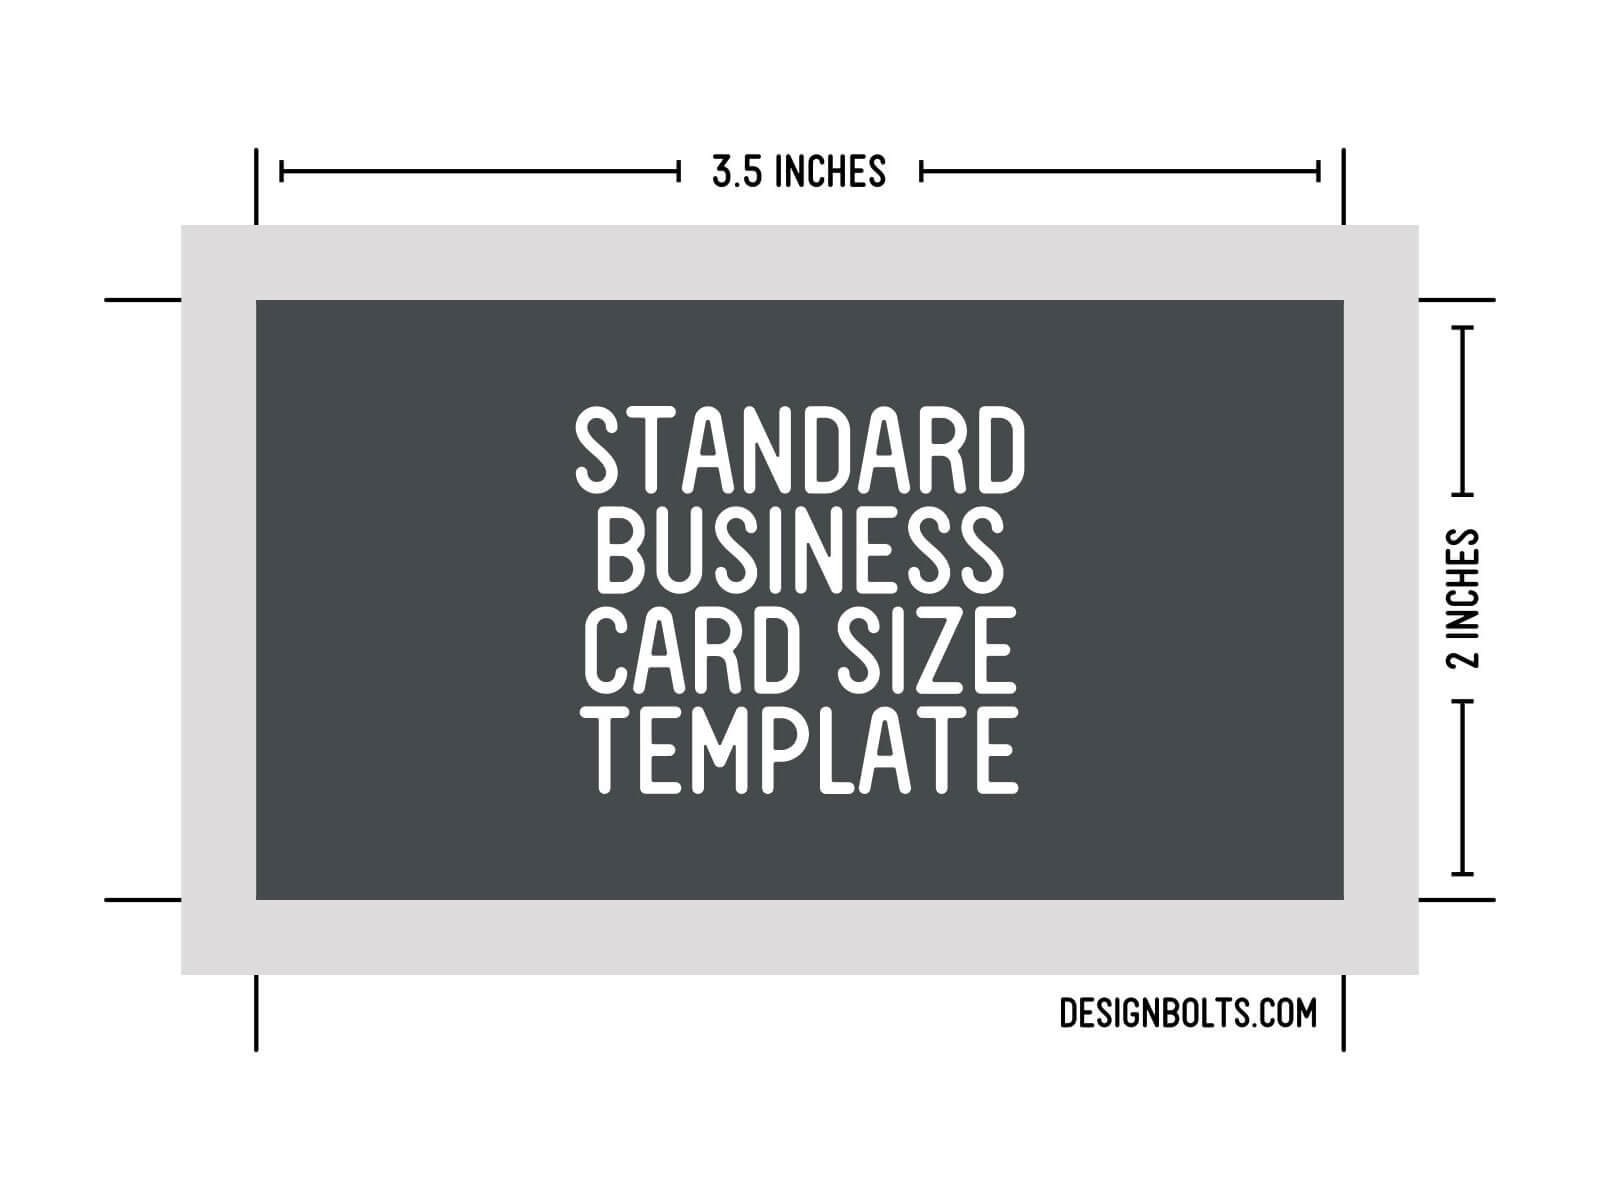 Size Of Business Card - Business Card Tips In Business Card Size Template Photoshop